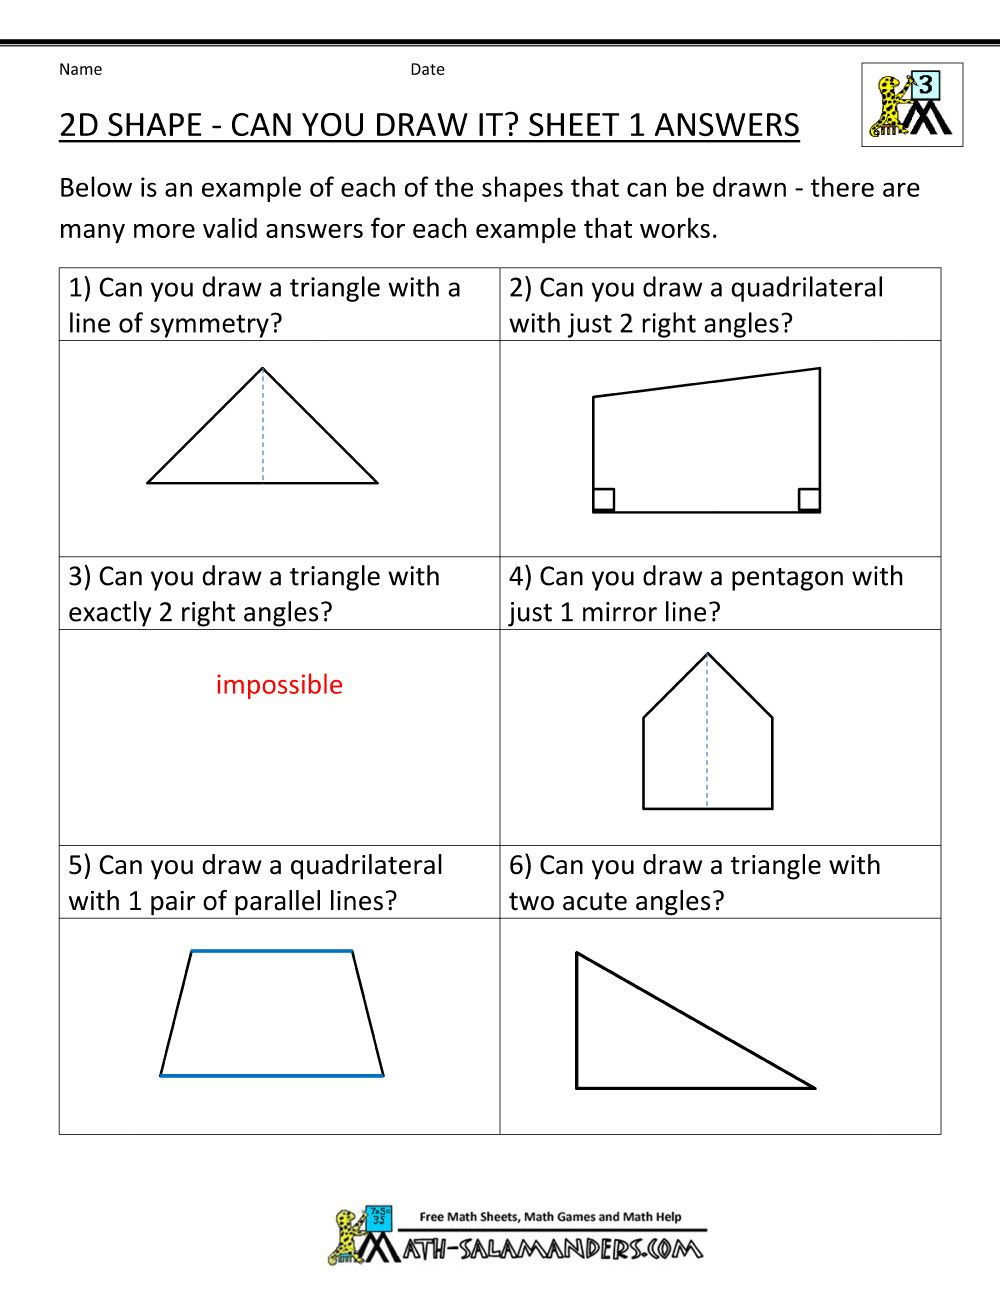 3Rd Grade Geometry Worksheets - Briefencounters Worksheet Template - Free Printable Geometry Worksheets For 3Rd Grade